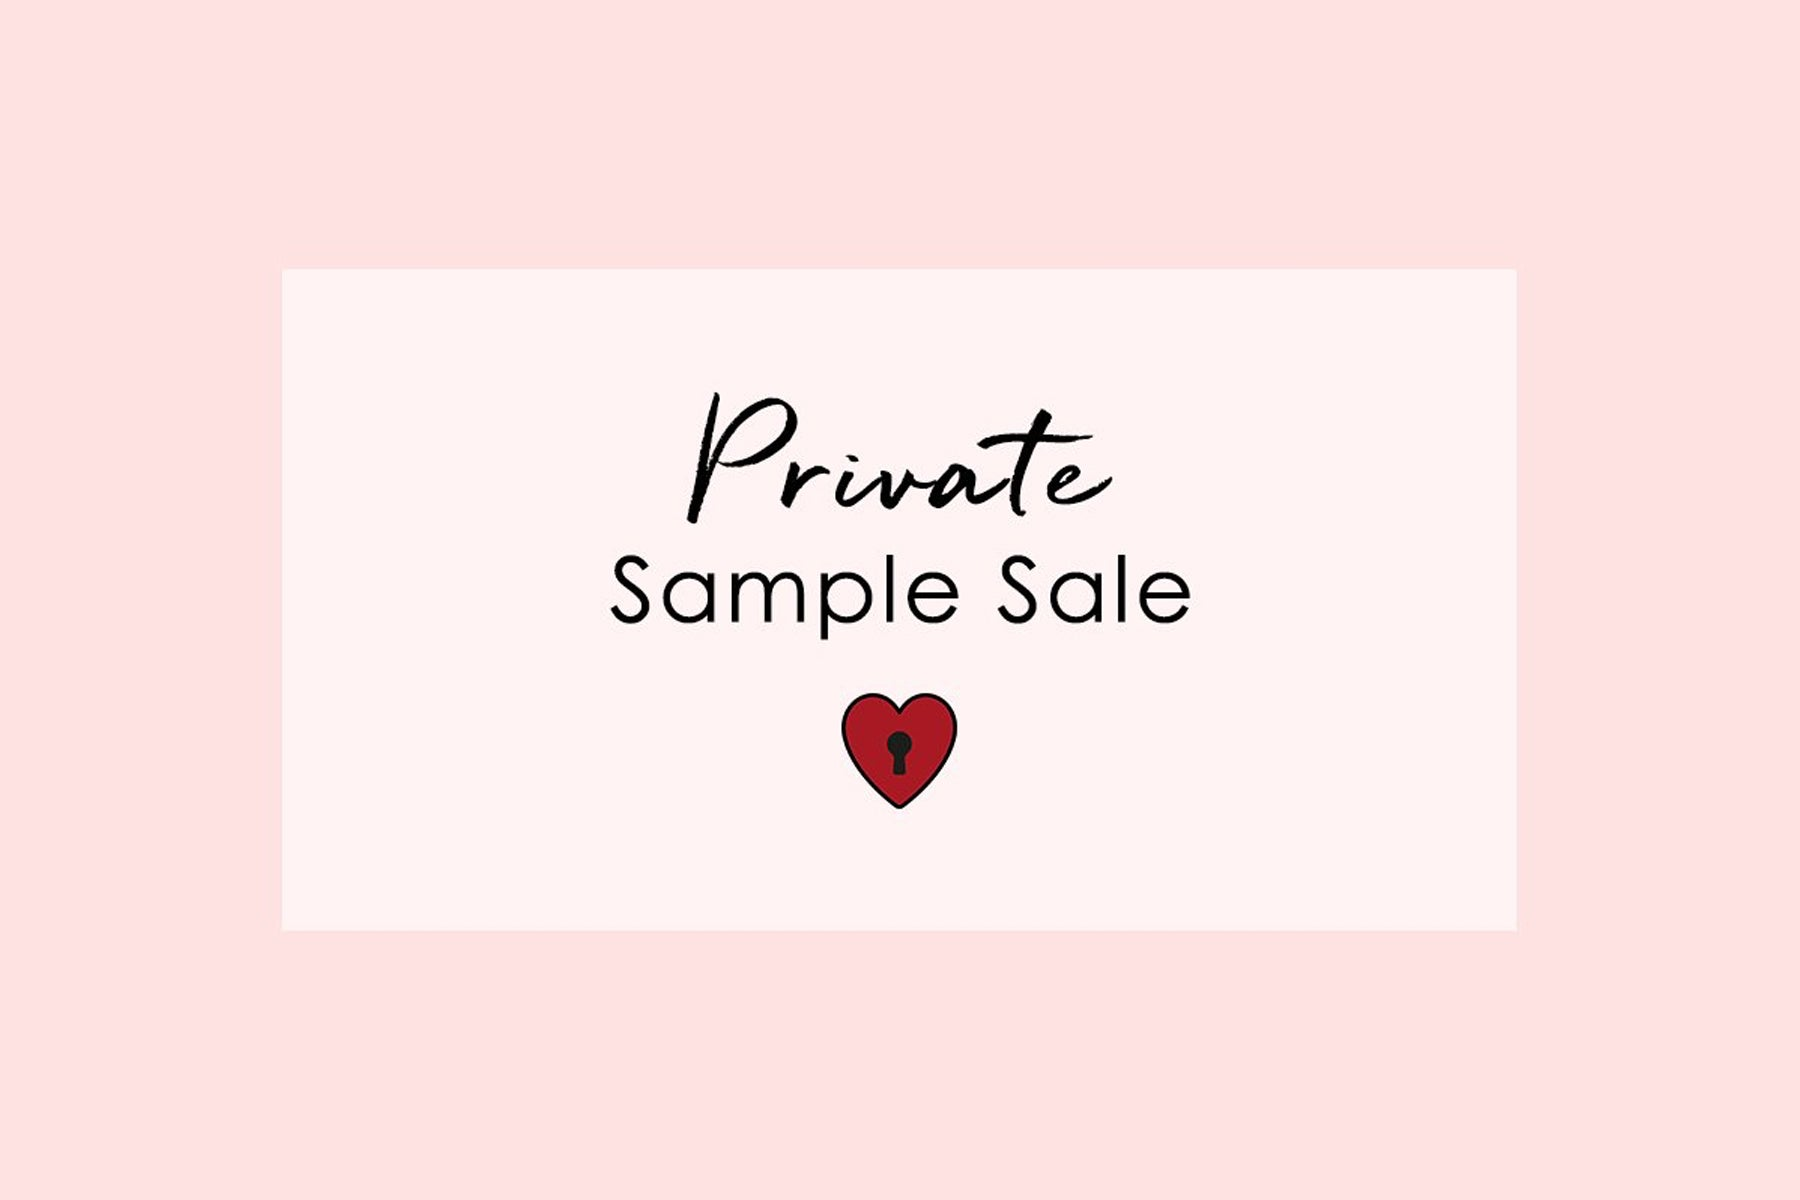 Private Sample Sale